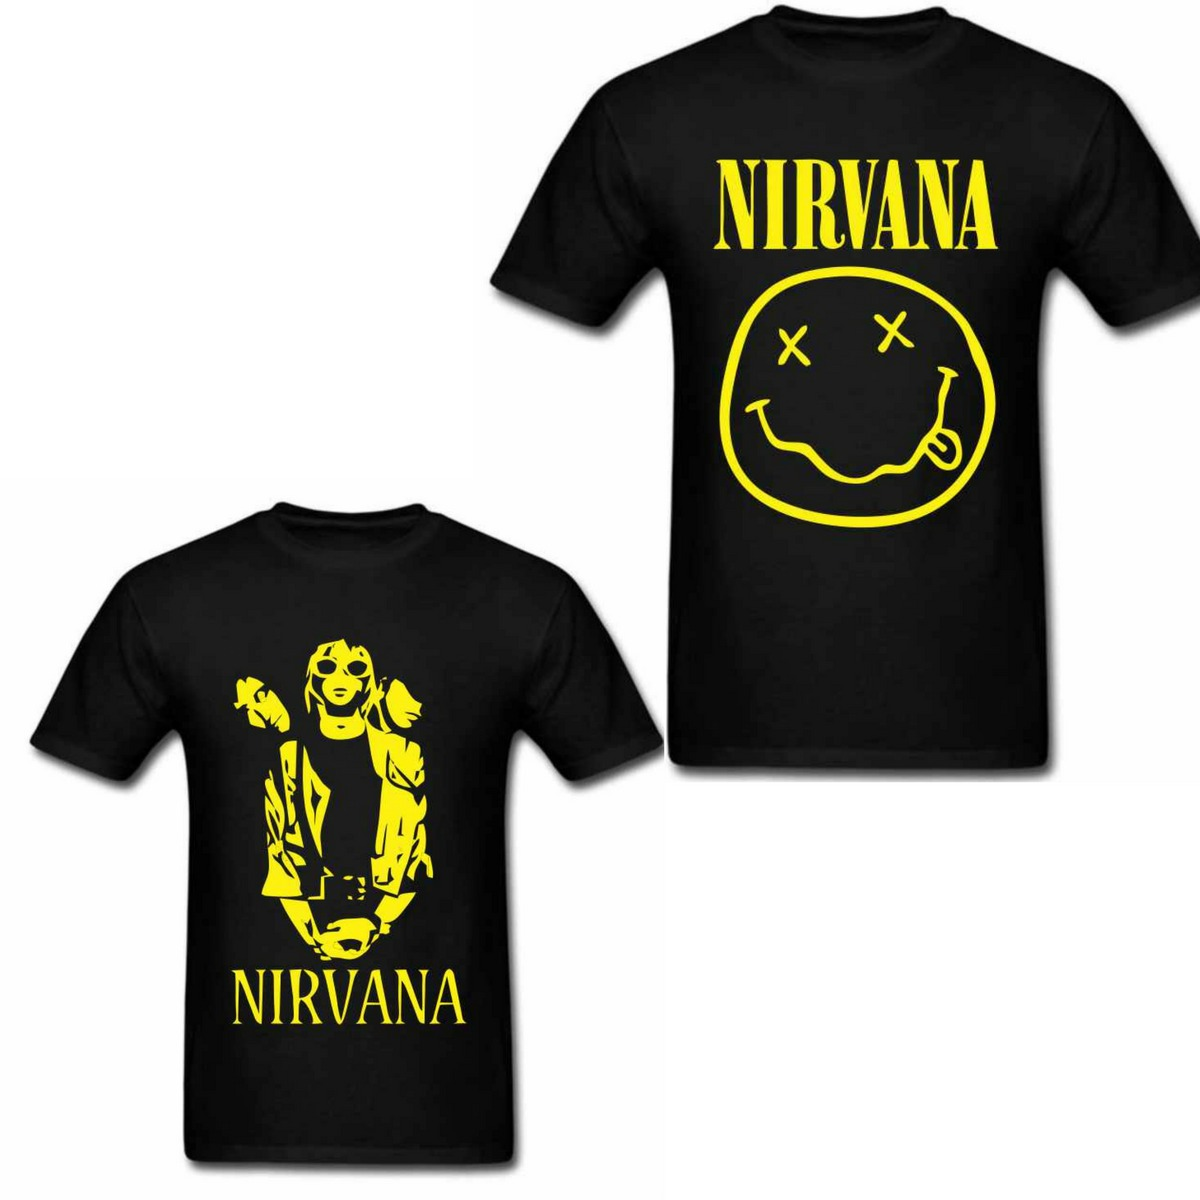 Camiseta Nirvana Nevermind Ln53 Consulado Do Rock Camisa - R  73 eca98c5500f